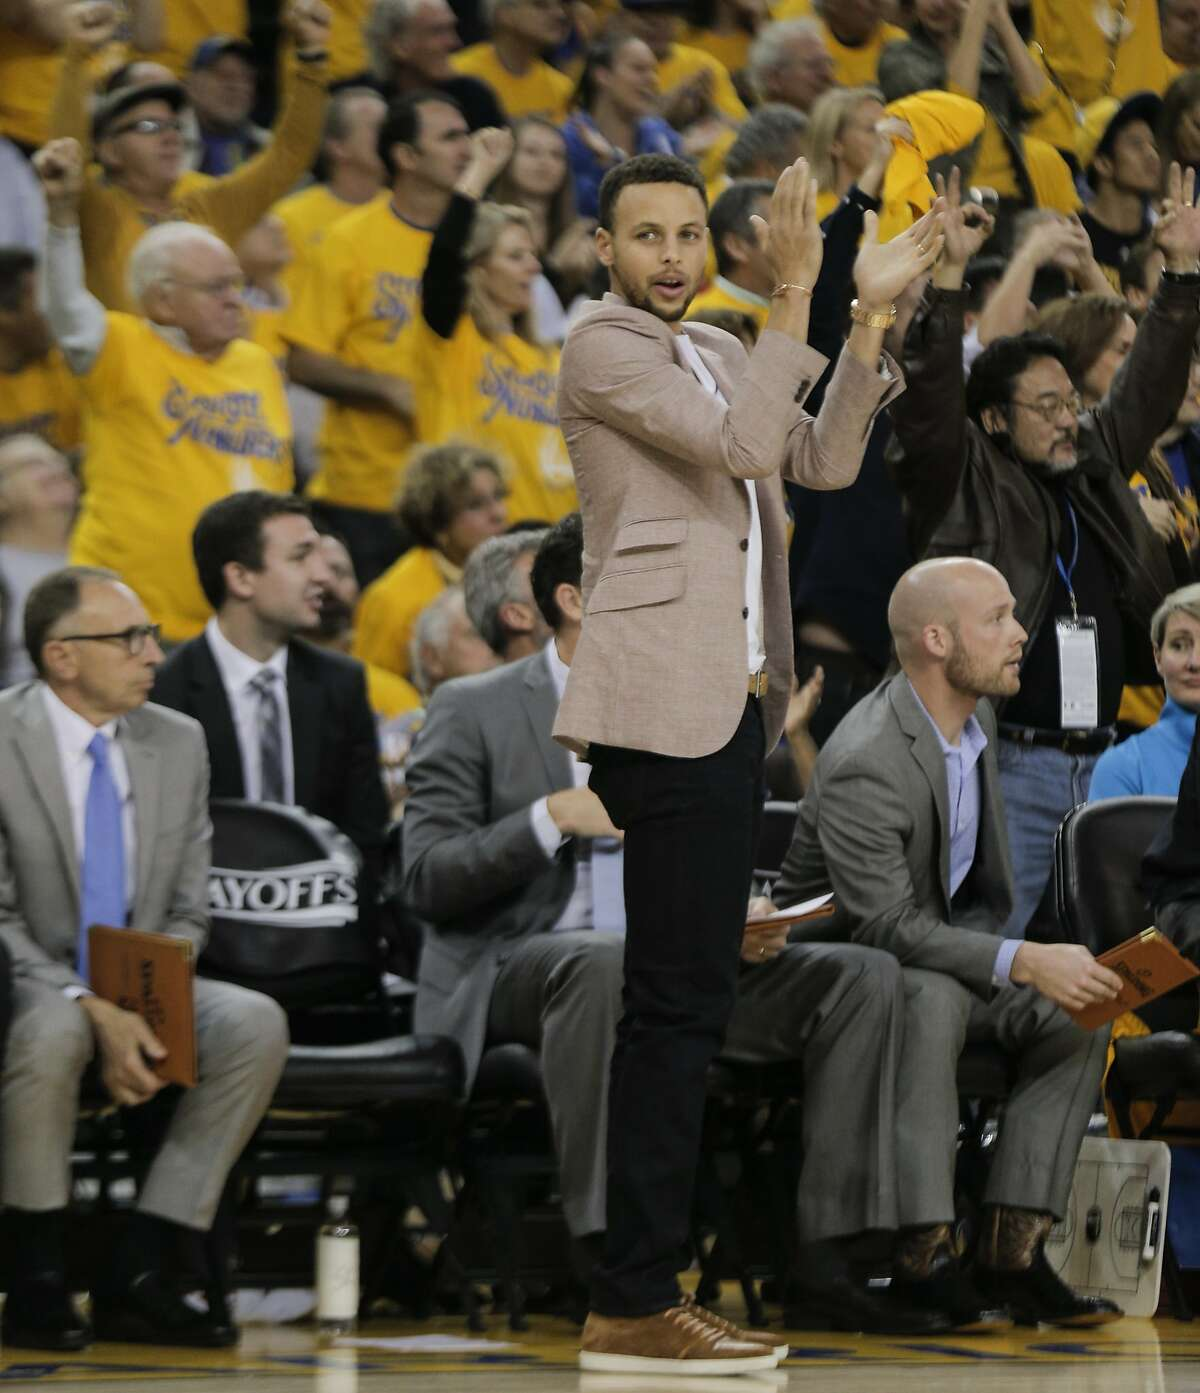 Golden State Warriors Stephen Curry reacts from the bench in Game 5 of the NBA Playoffs at Oracle Arena on Wednesday, April 27, 2016 in Oakland, Calif.